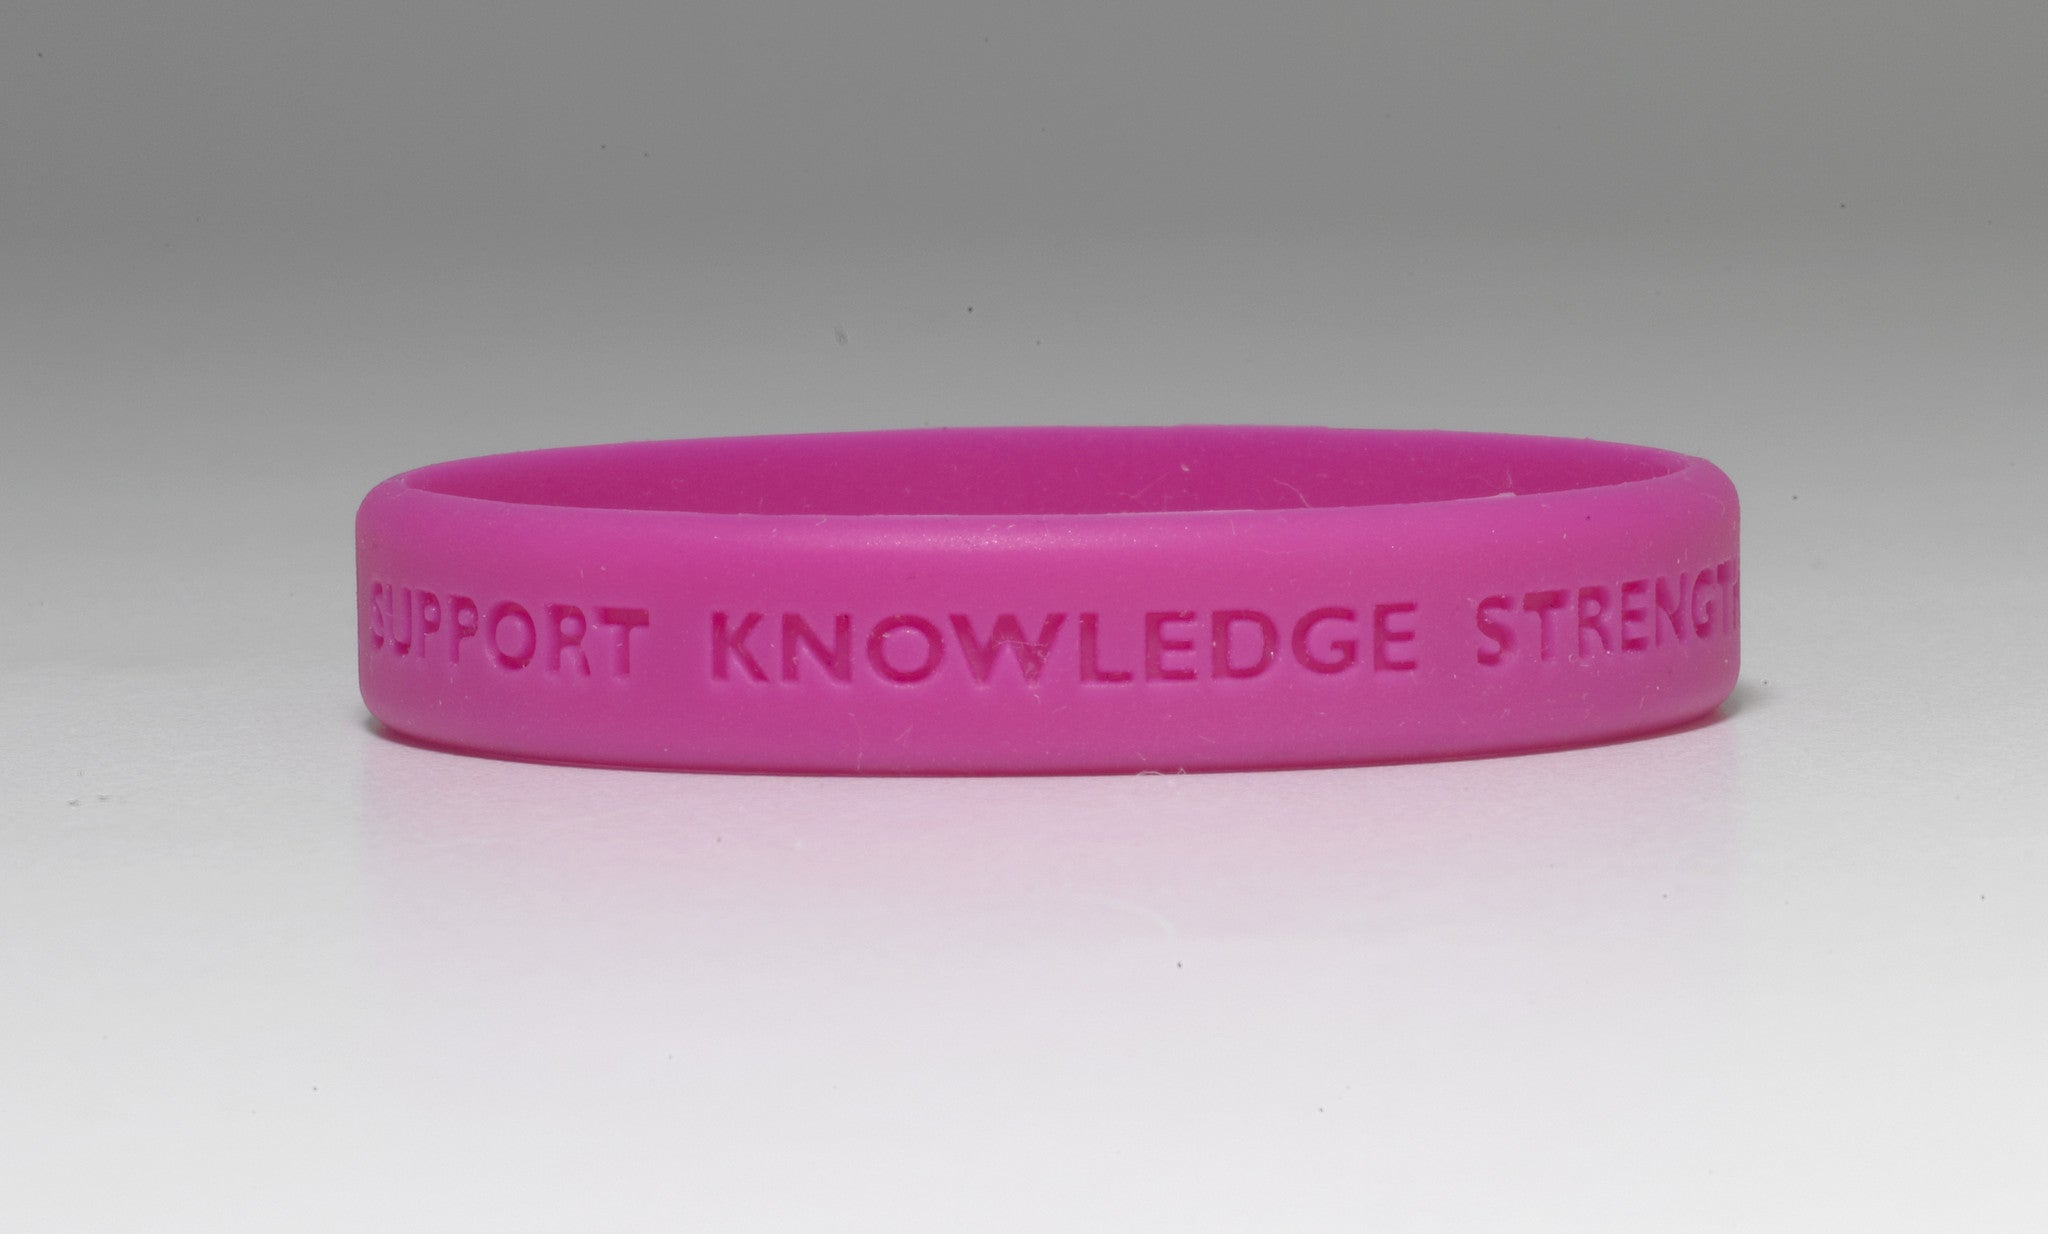 bracelet b hot font pink quality shop silicone breast the cancer buoys awareness limited lot high edition wristband save blank